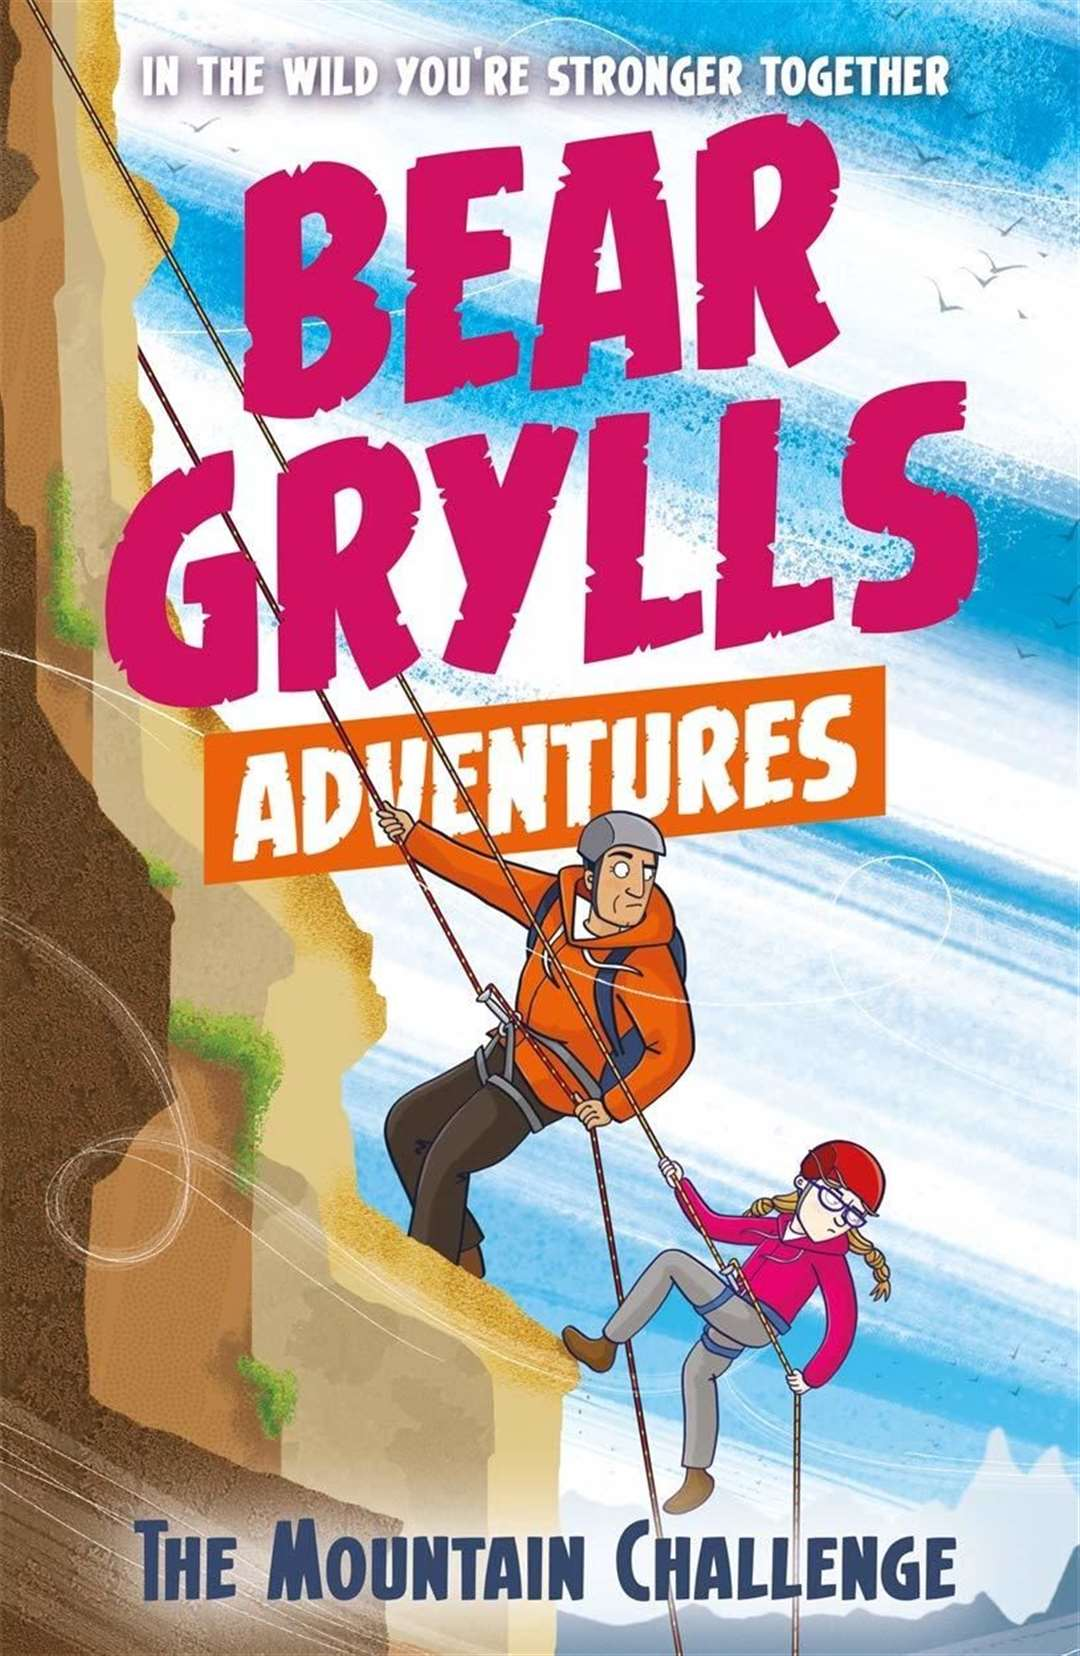 Bear Grylls Adventures by Bear Grylls (39035242)